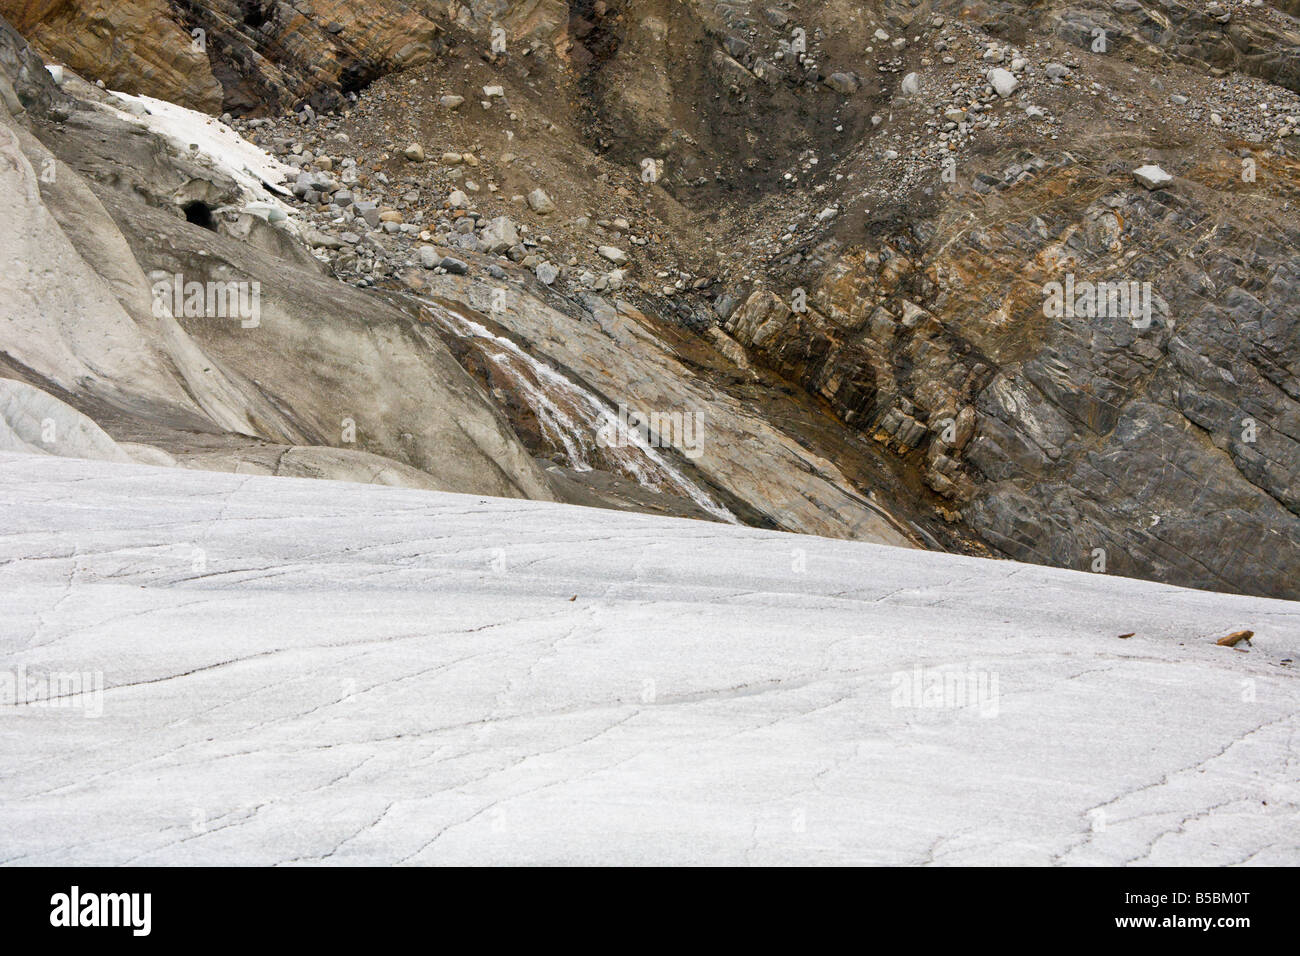 Rough mountain surface contrasts with smooth ice surface of Mendenhall Glacier near Juneau, Alaska - Stock Image